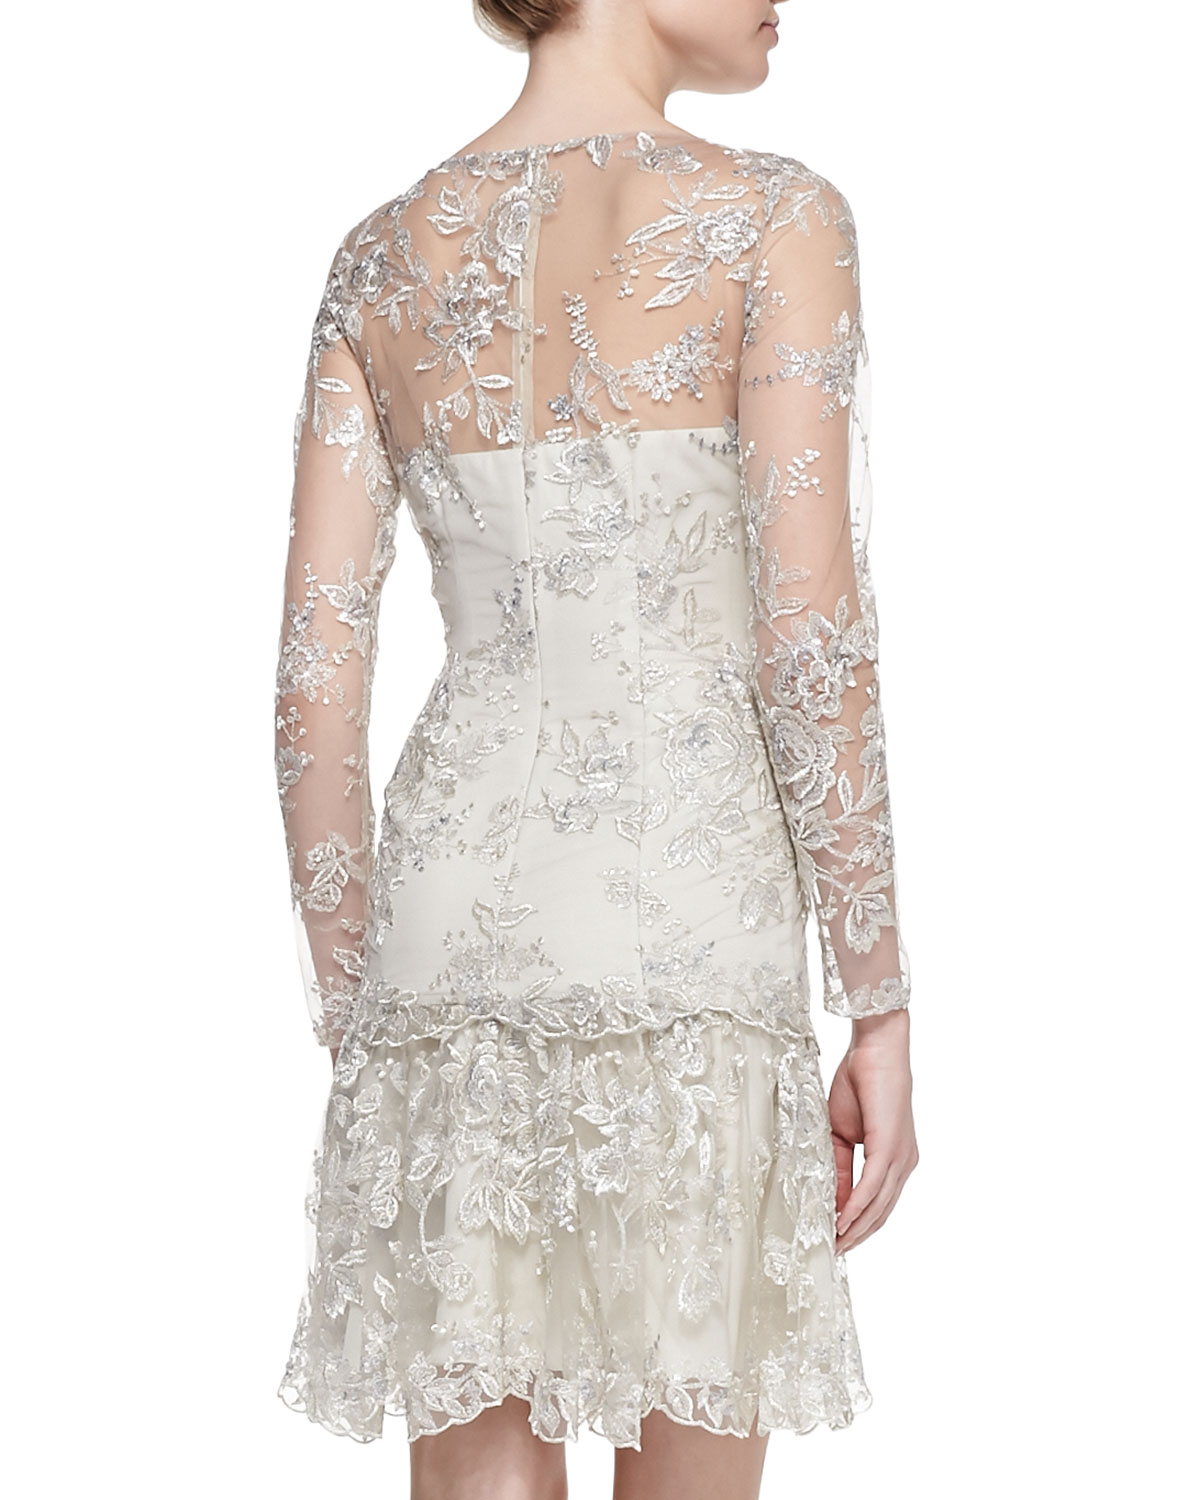 Notte by marchesa Lace Ruffle Hem Cocktail Dress in White